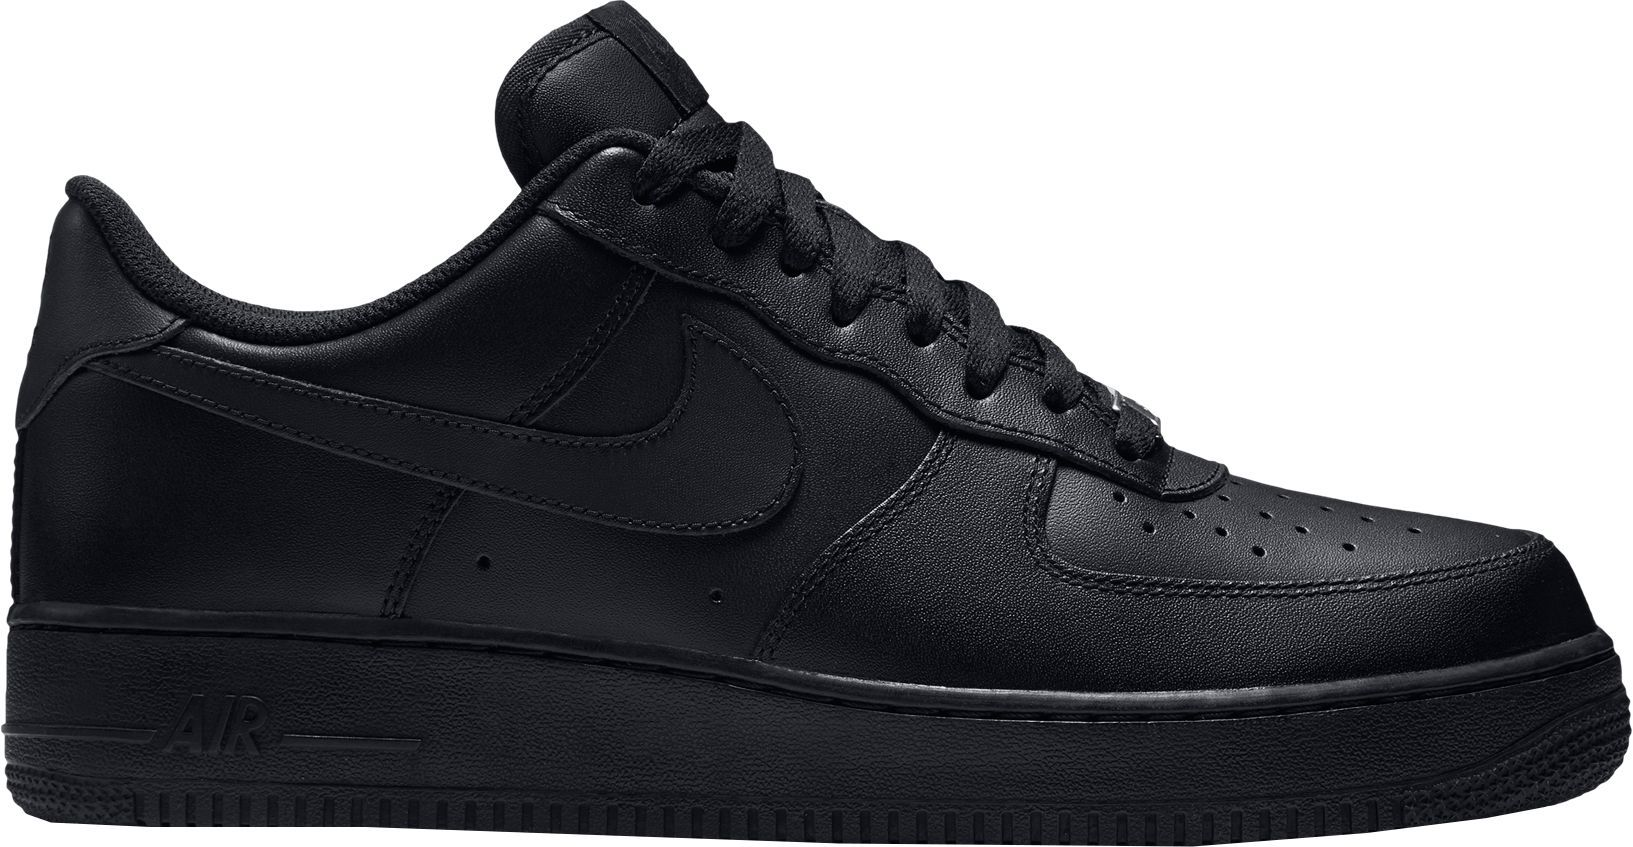 Nike Air Force 1 Shoes | Sneakers in 2019 | Nike air force